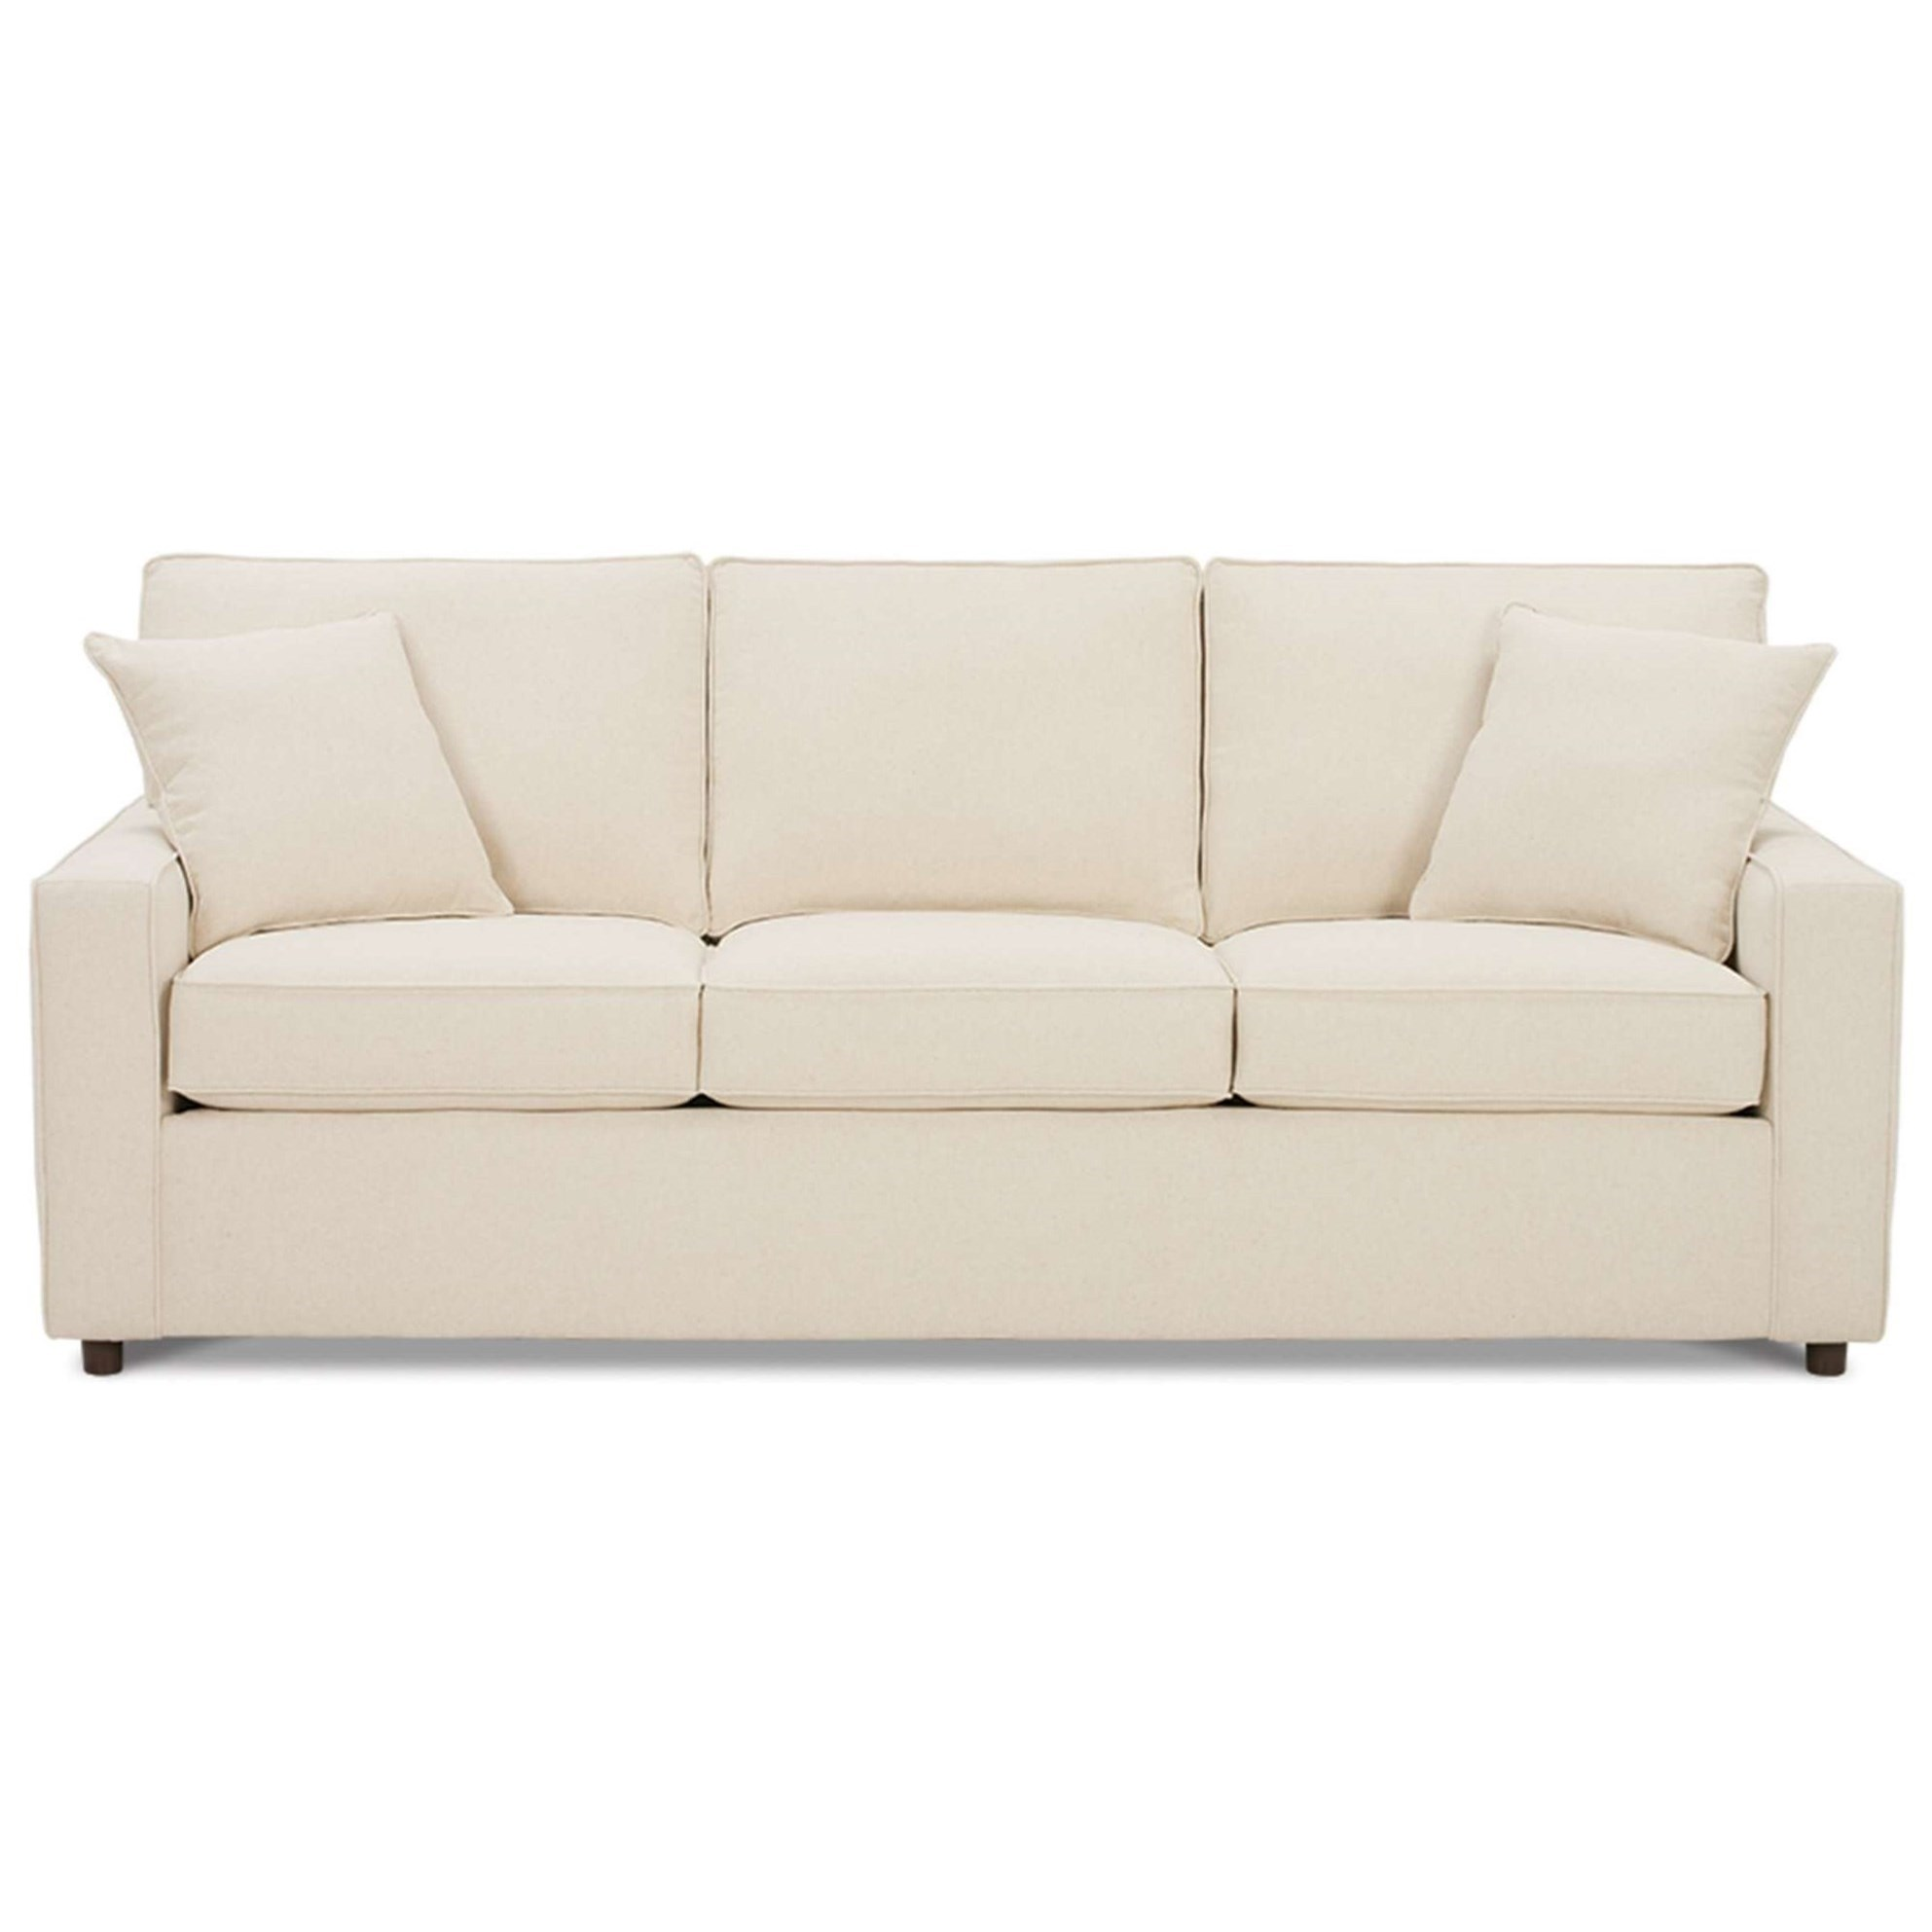 Monaco Transitional Sofa with Track Arms by Rowe at Bullard Furniture